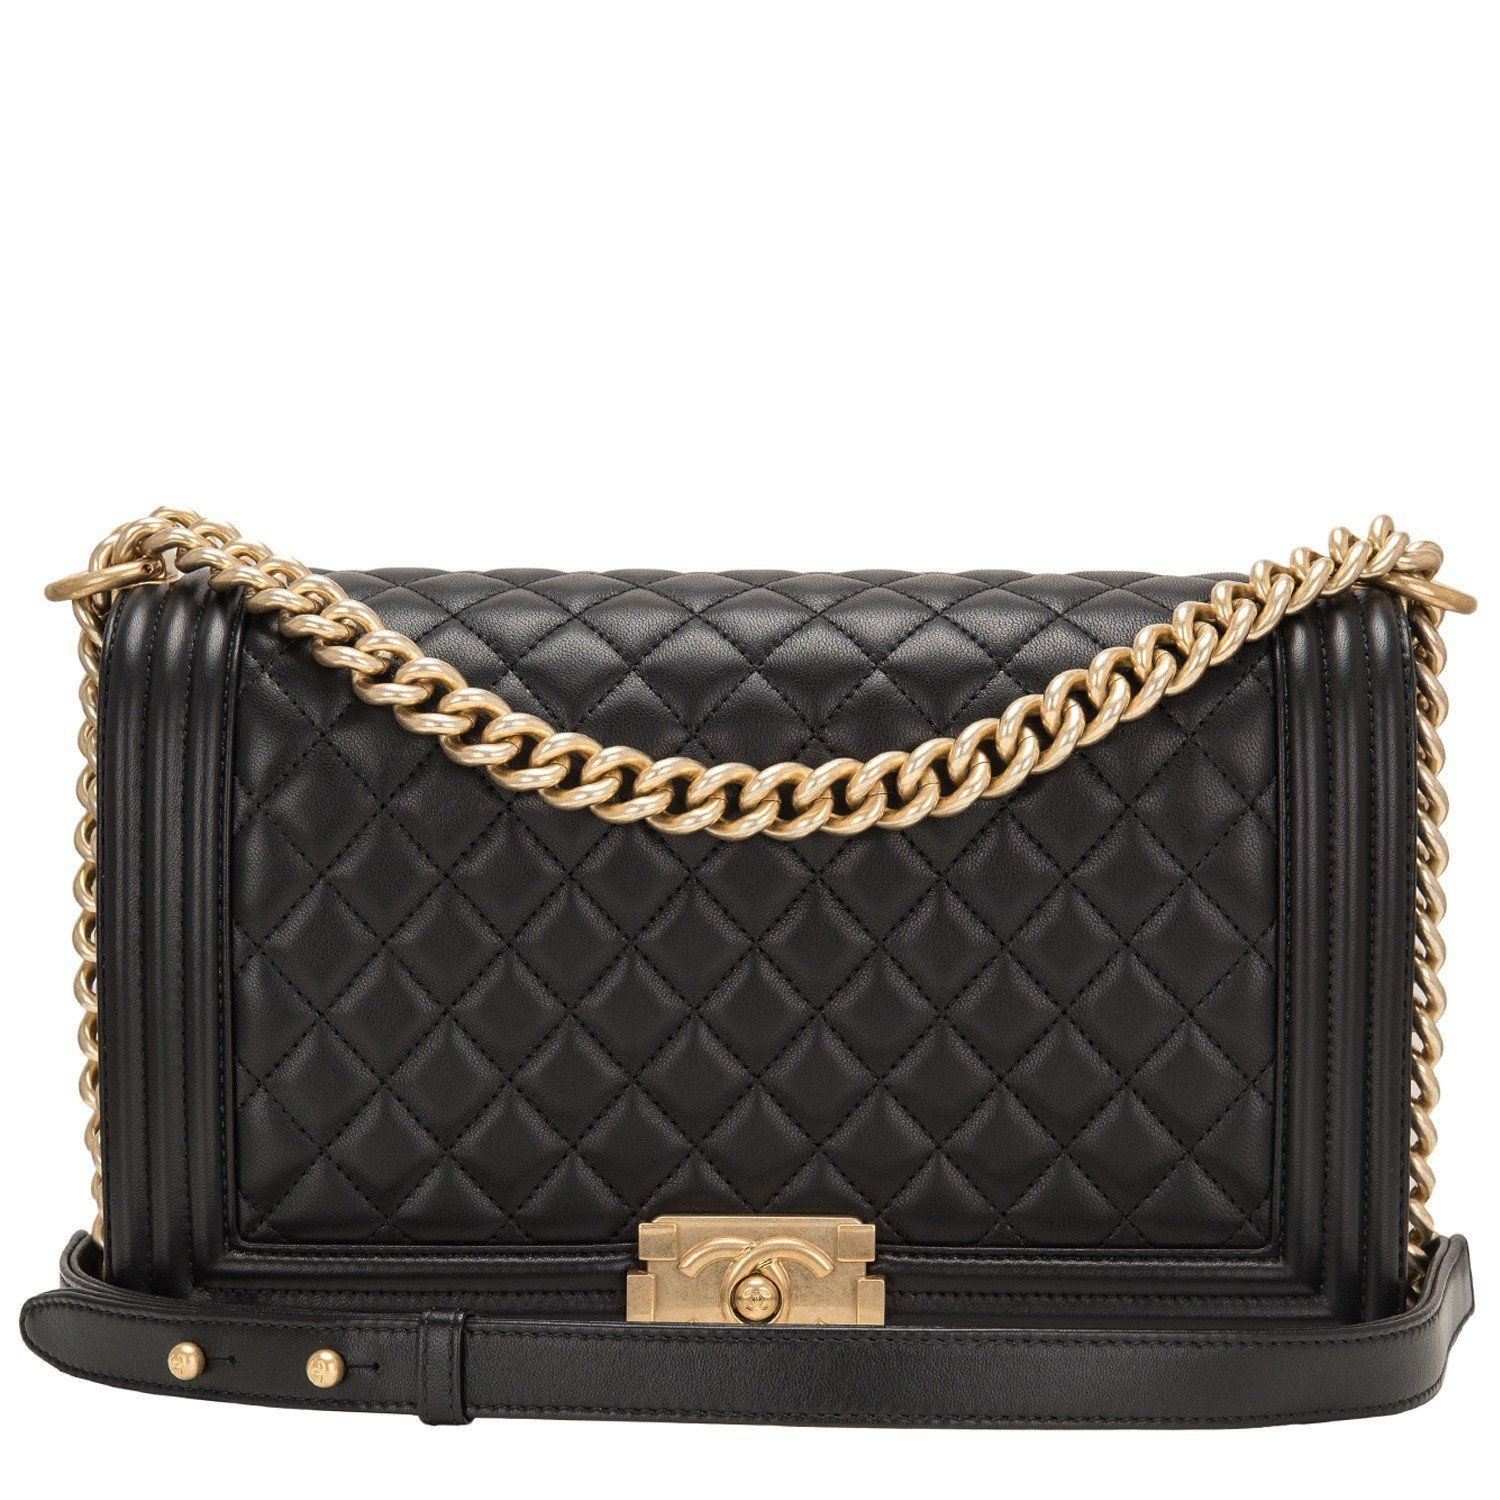 Leather Chanel Black Quilted Lambskin New Medium Boy Bag